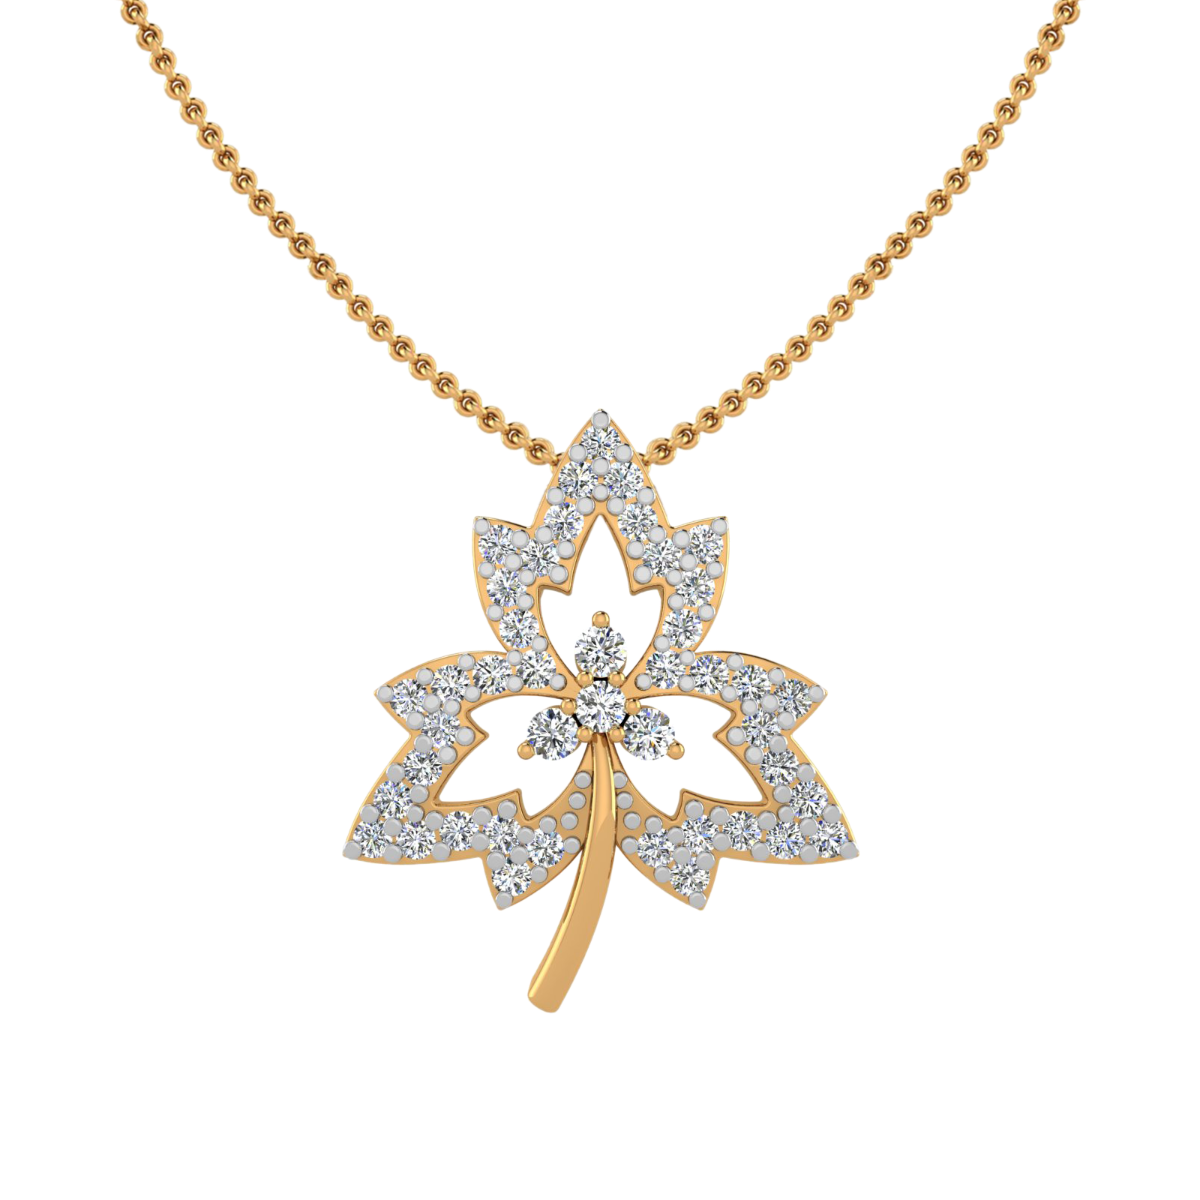 The Maple leaf Diamond Pendant